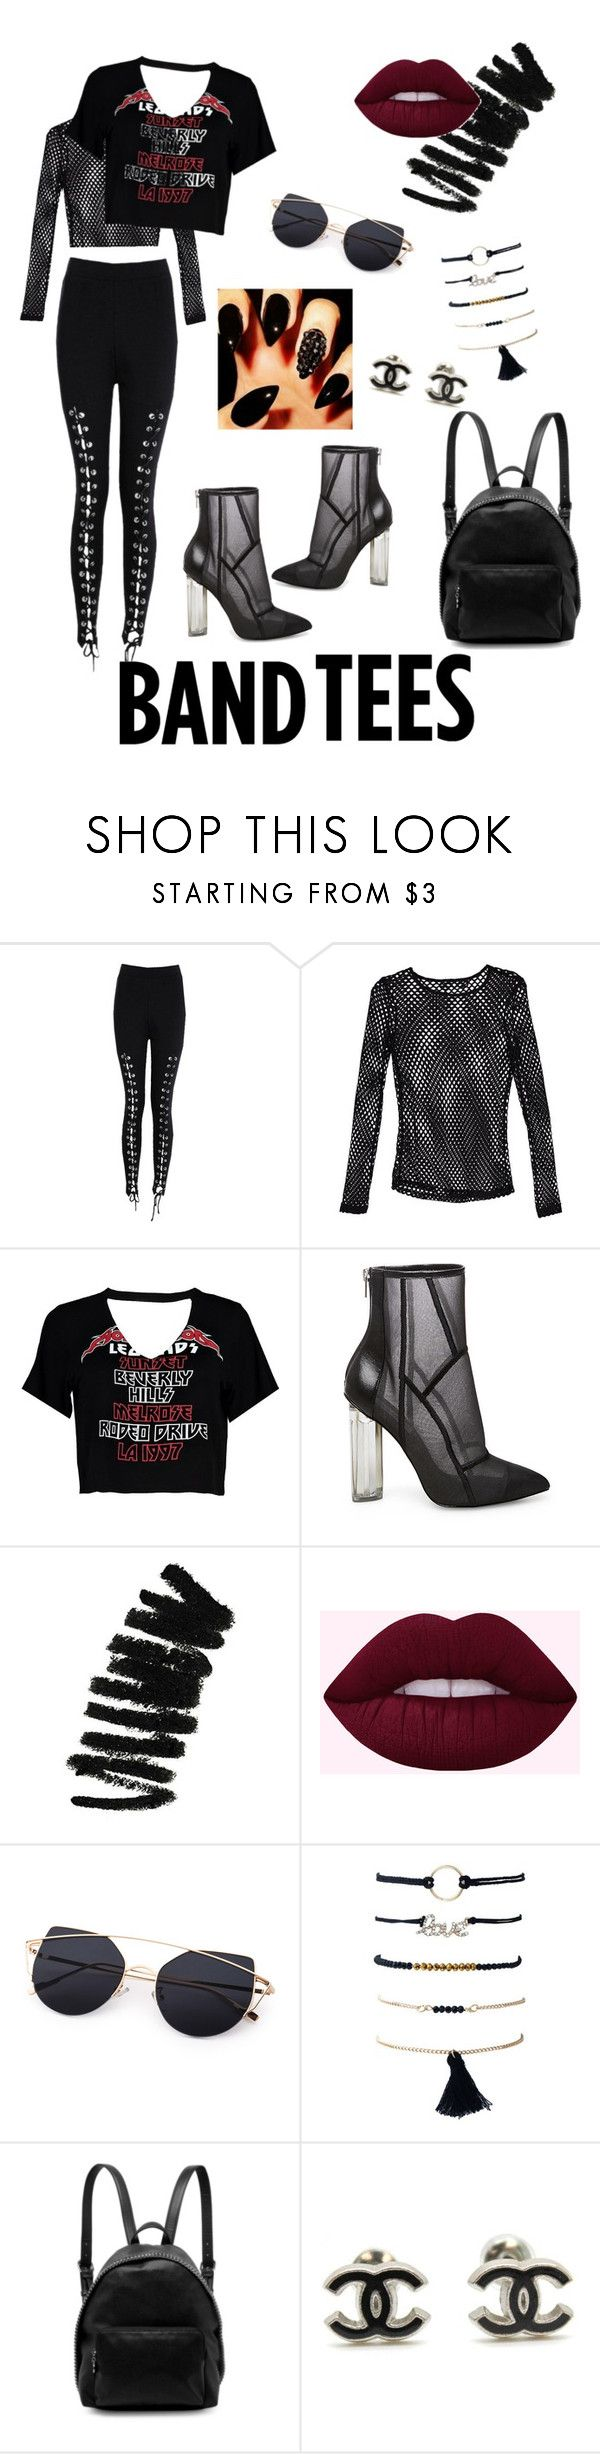 """Rocker Chic"" by lexisizzle ❤ liked on Polyvore featuring Boohoo, Nasty Gal, Steve Madden, Bobbi Brown Cosmetics and STELLA McCARTNEY"